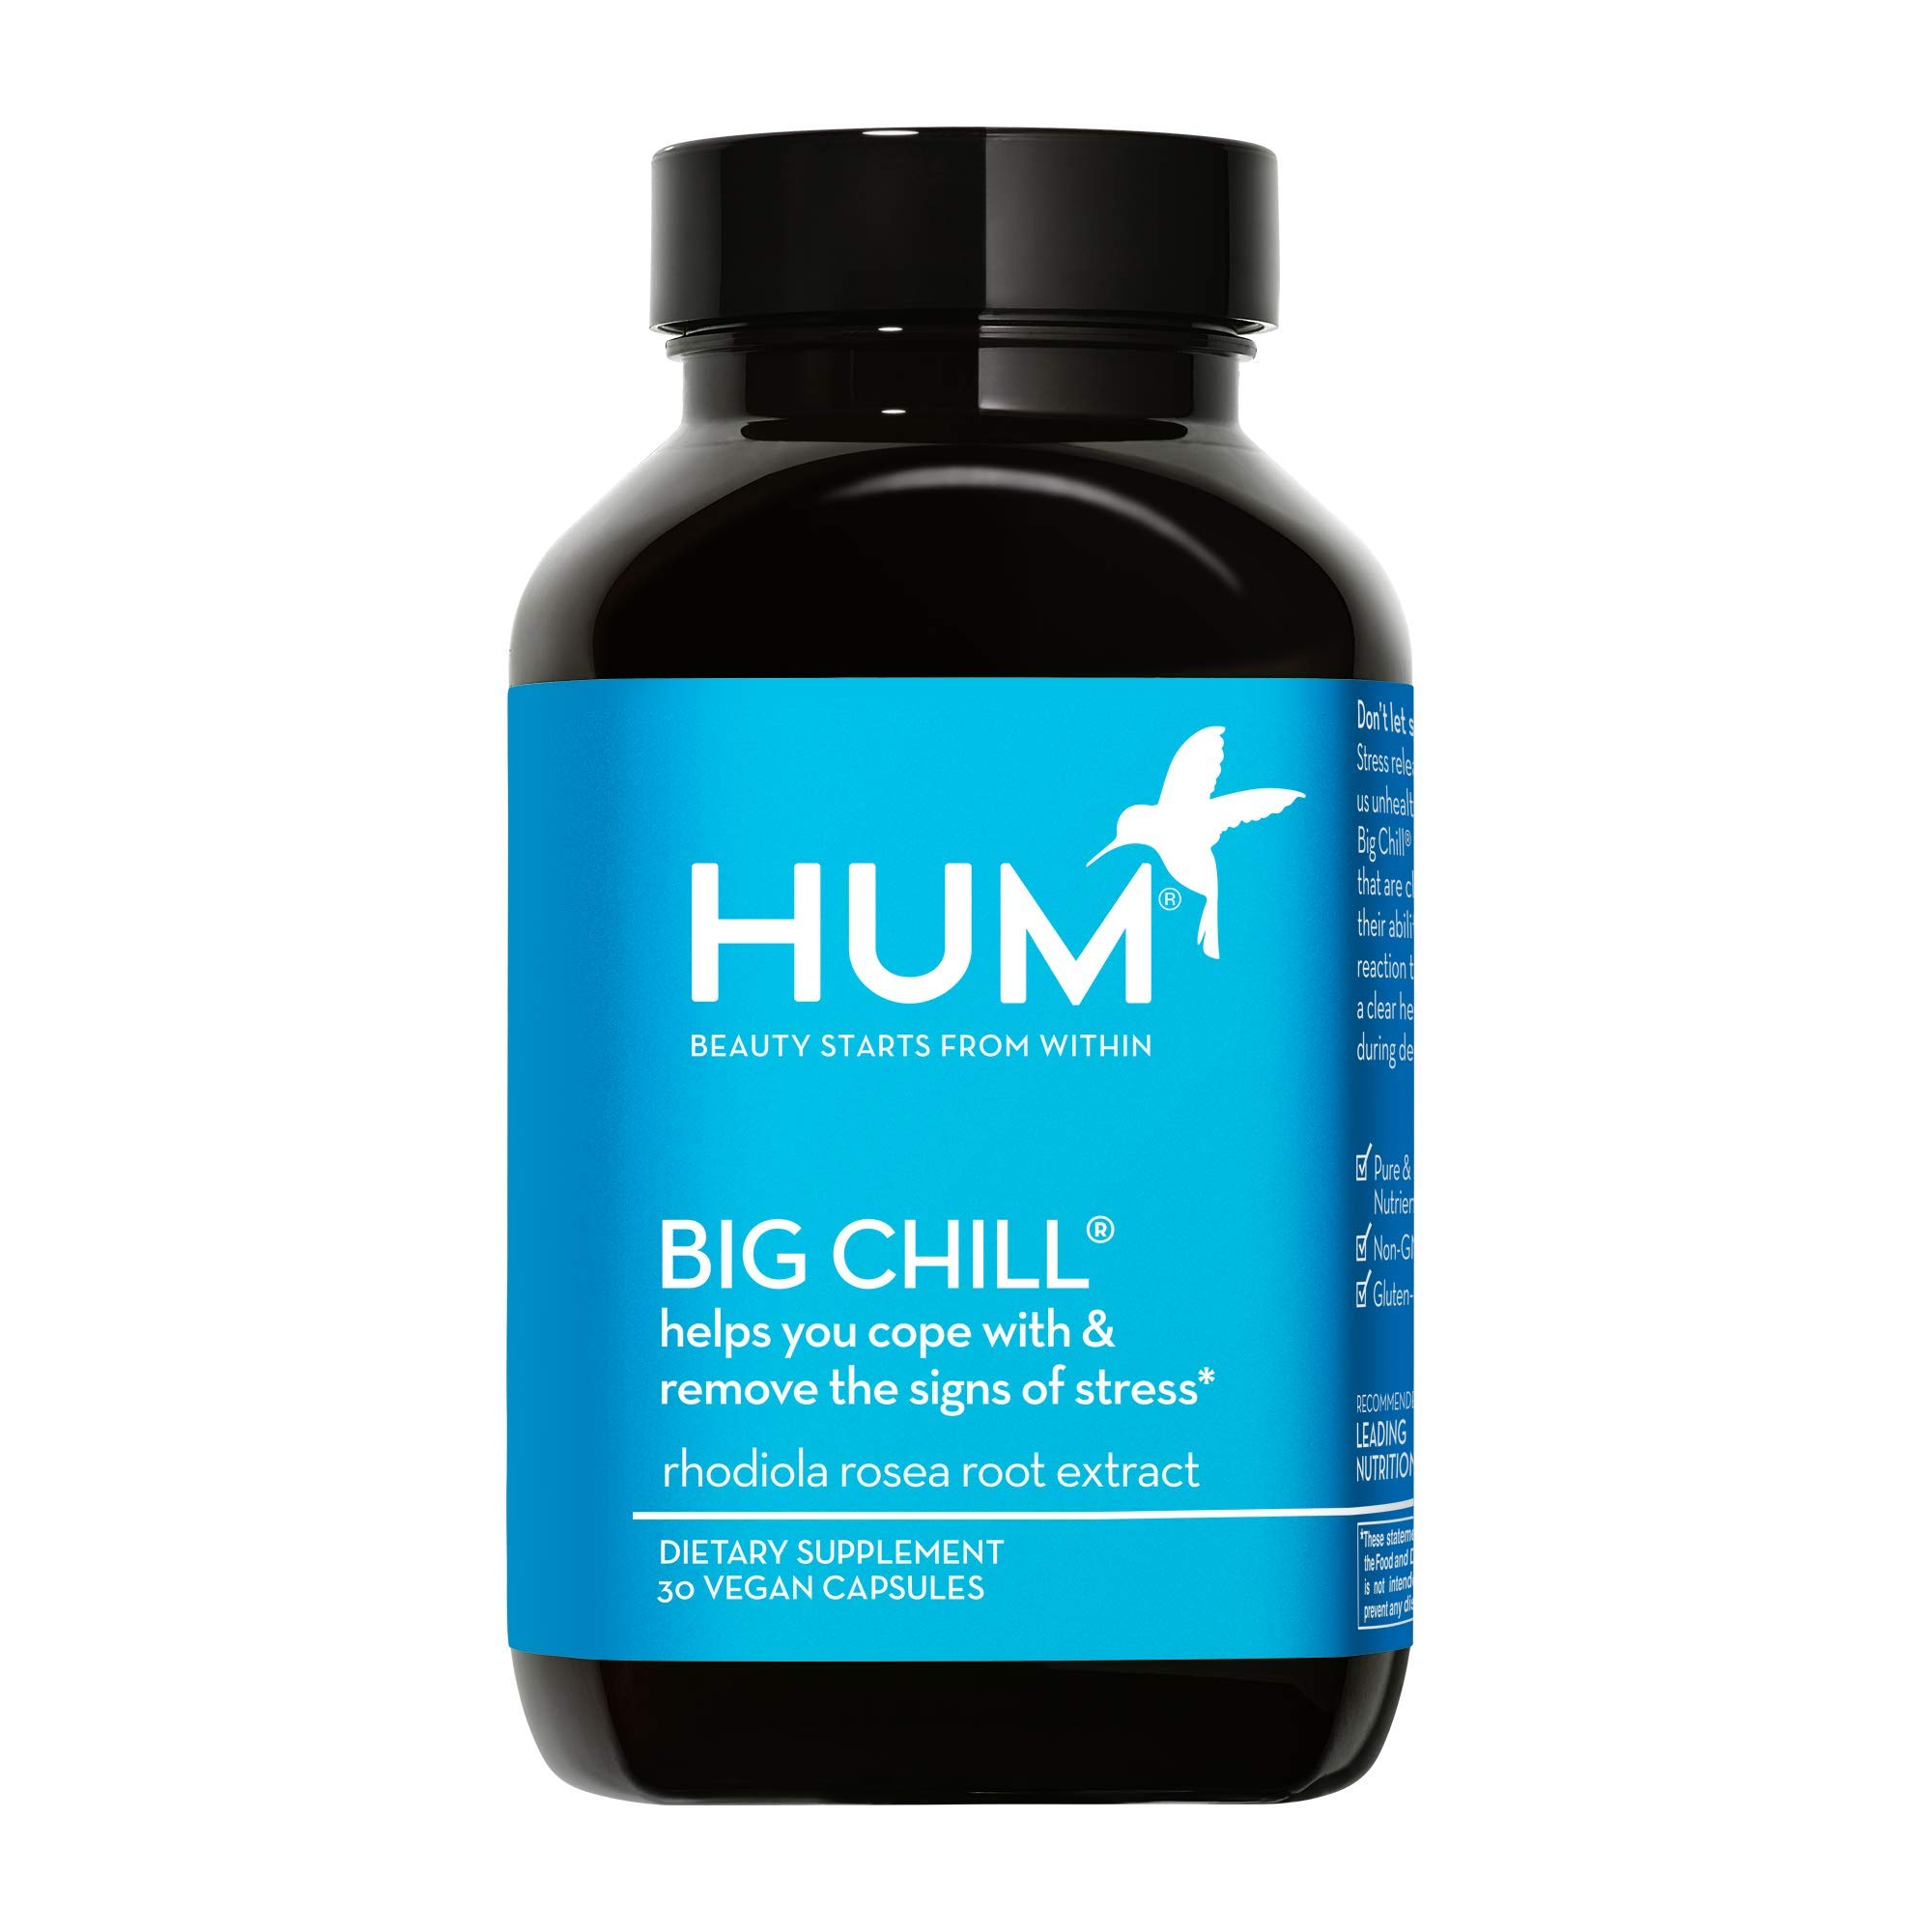 HUM Big Chill - Stress Management Support Supplement - Promotes Calm Mood & Focus with 500mg Rhodiola Rosea - Gluten Free & Non-GMO (30 Vegan Capsules)